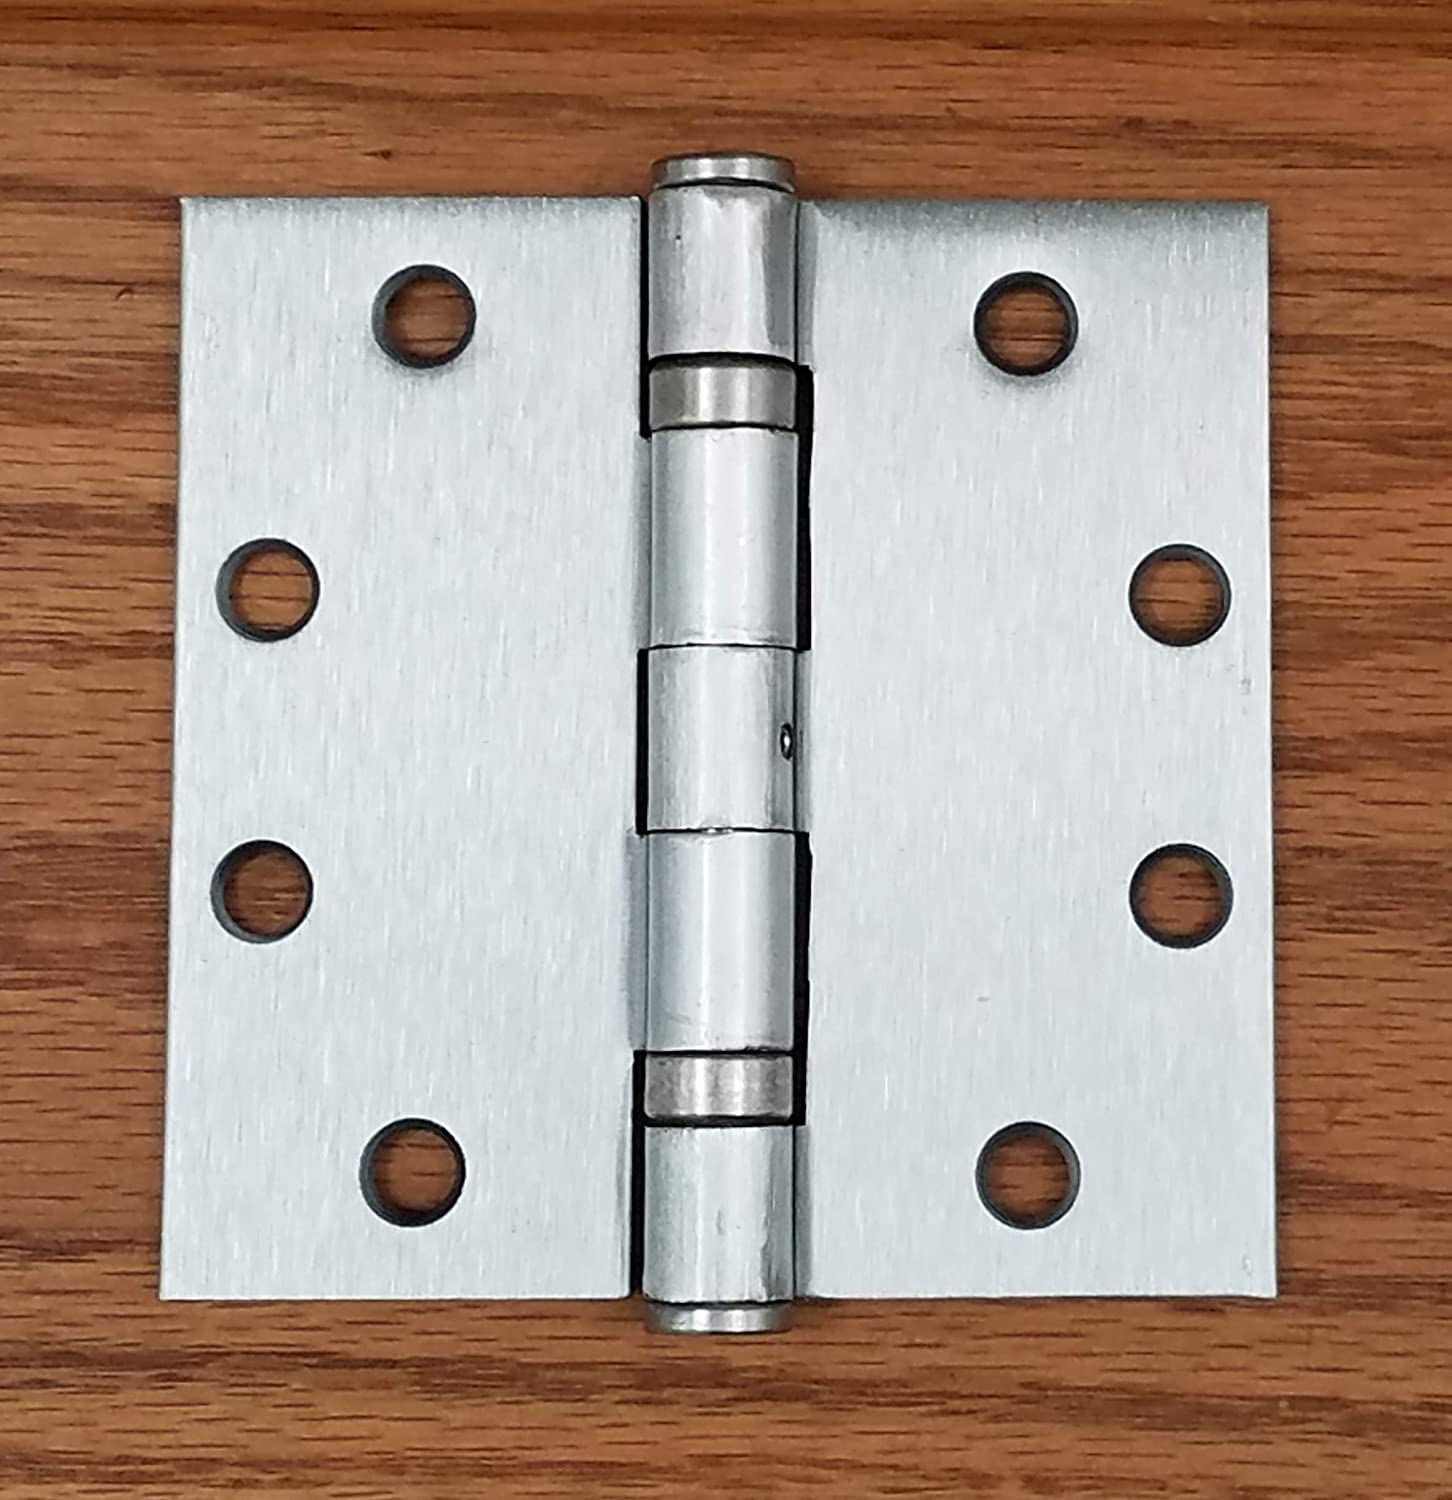 Non-Removable Pin Hinge Outlet 4.5 Inch Square Satin Nickel Commercial Door Hinges Ball Bearing 2 Pack